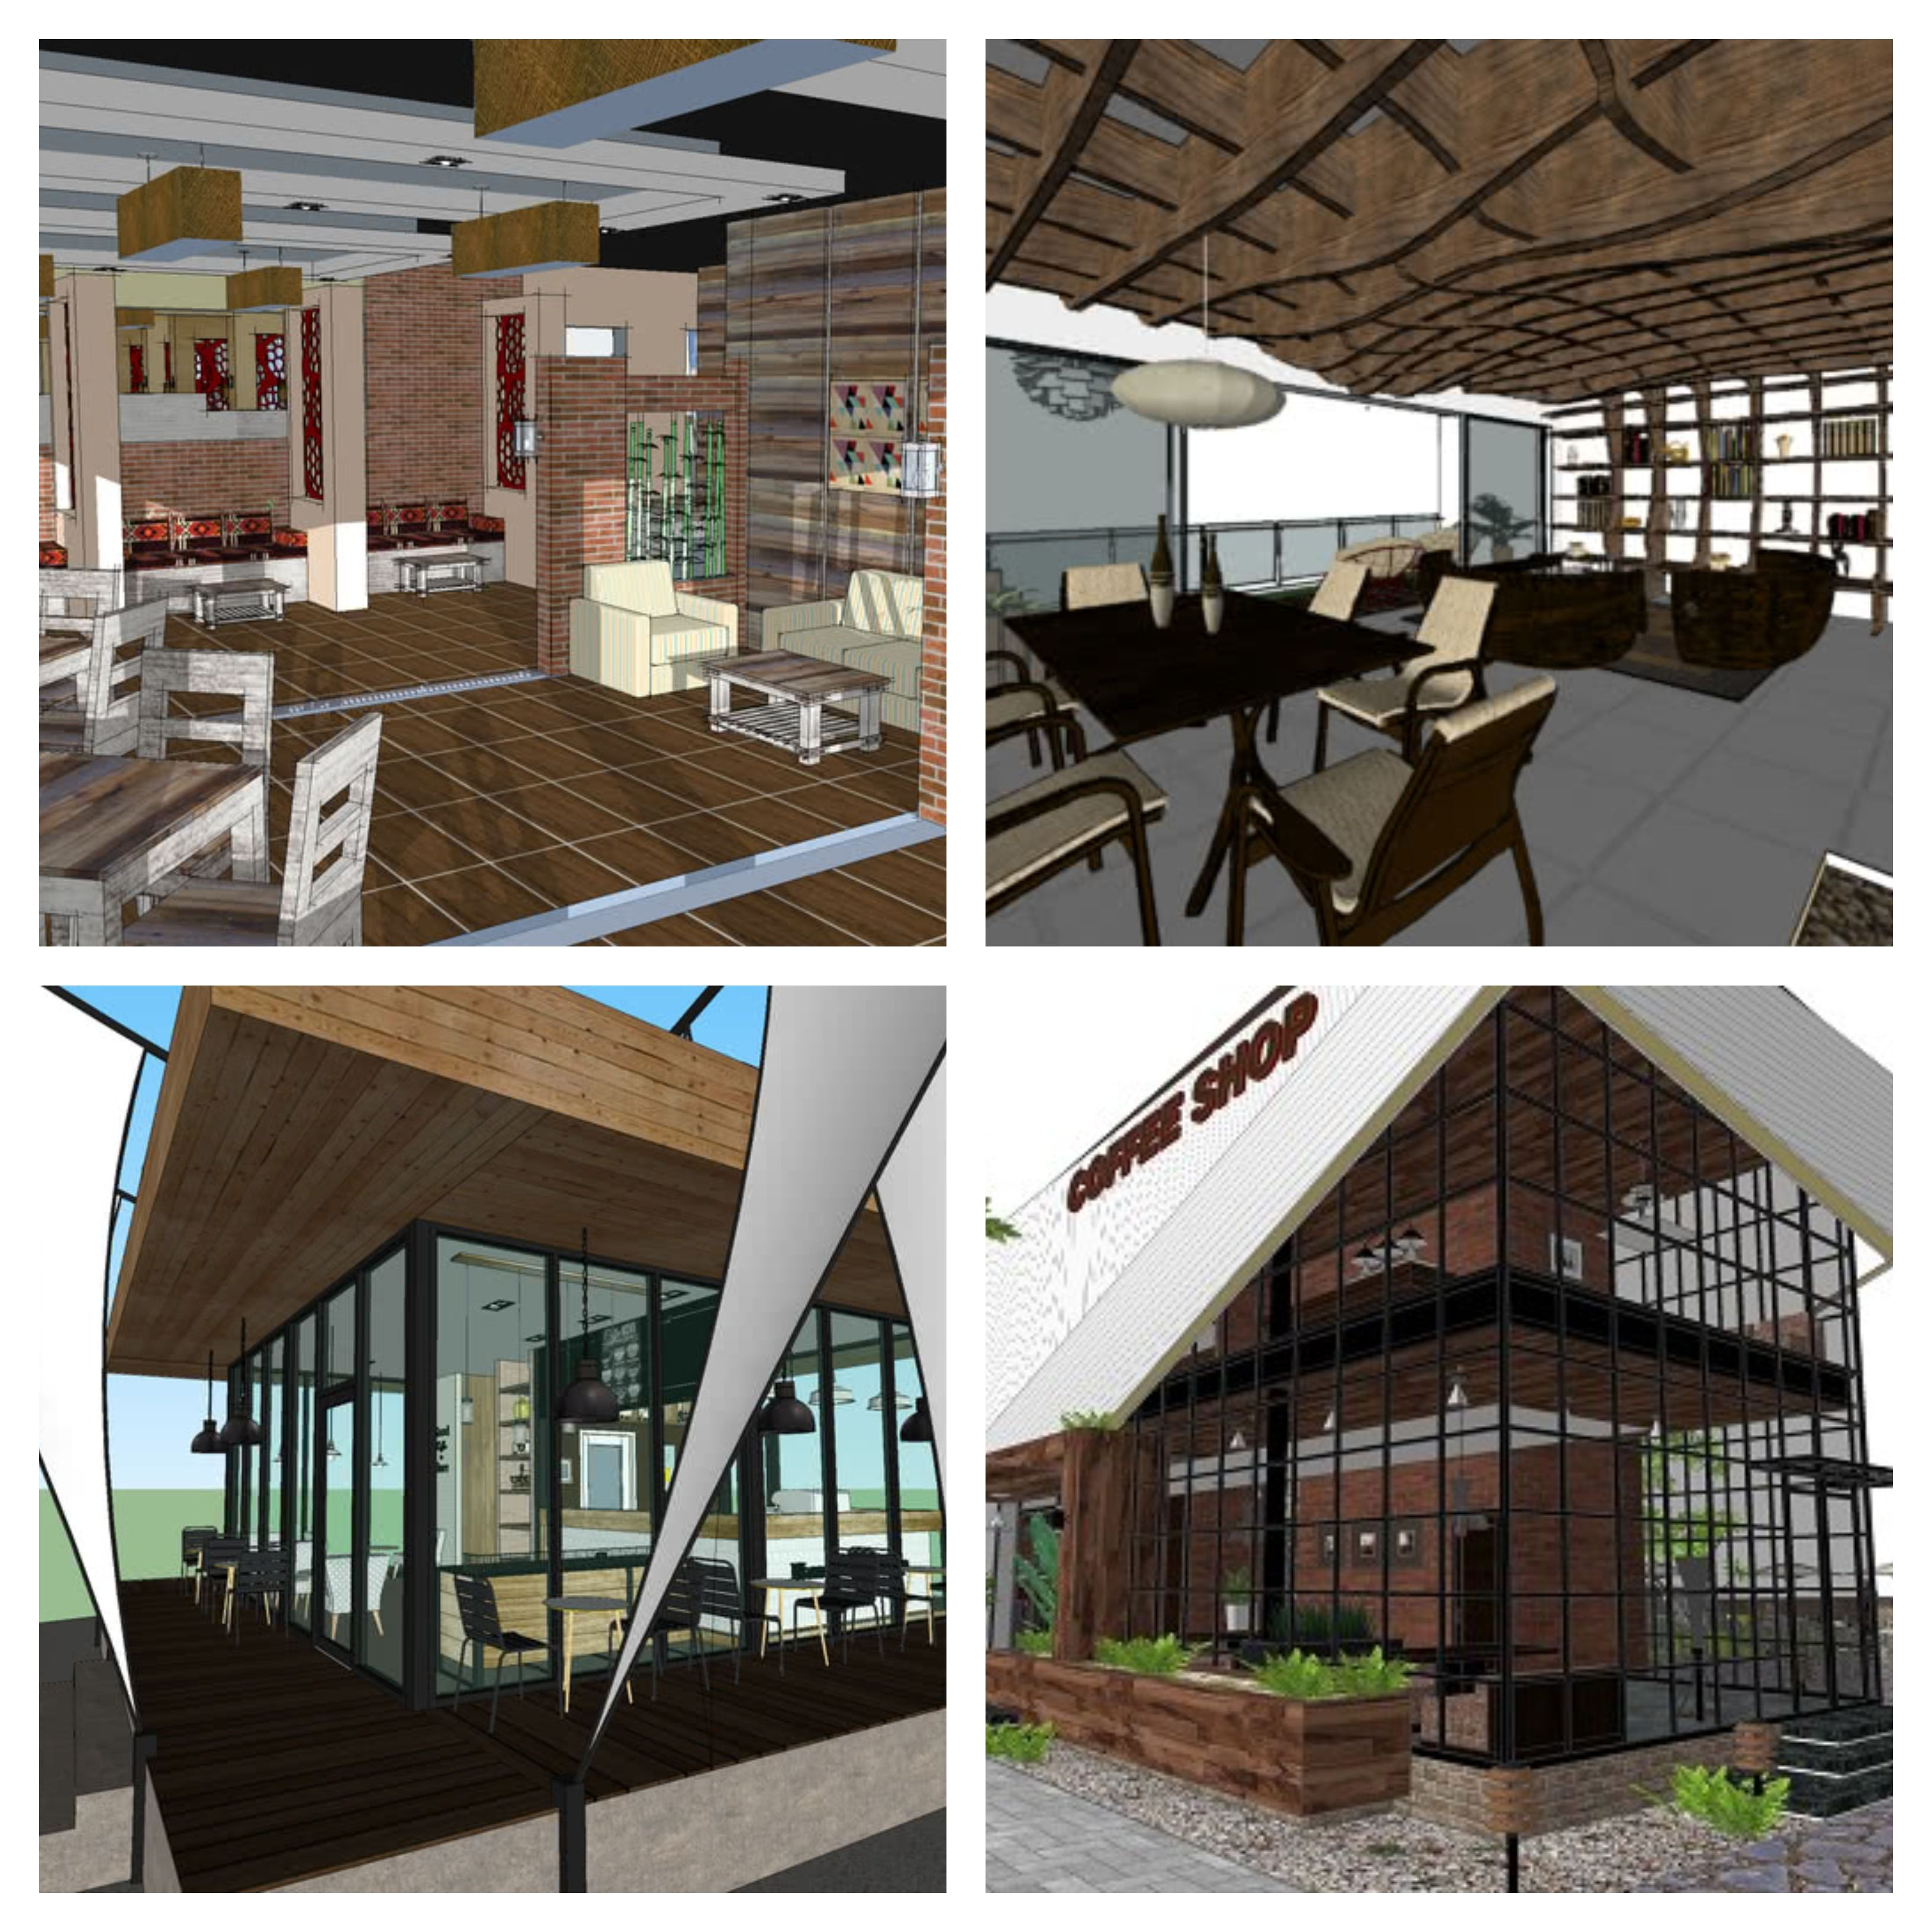 Commercial Building Shop Drawings In 2020 Steel Fabrication Building Outdoor Decor